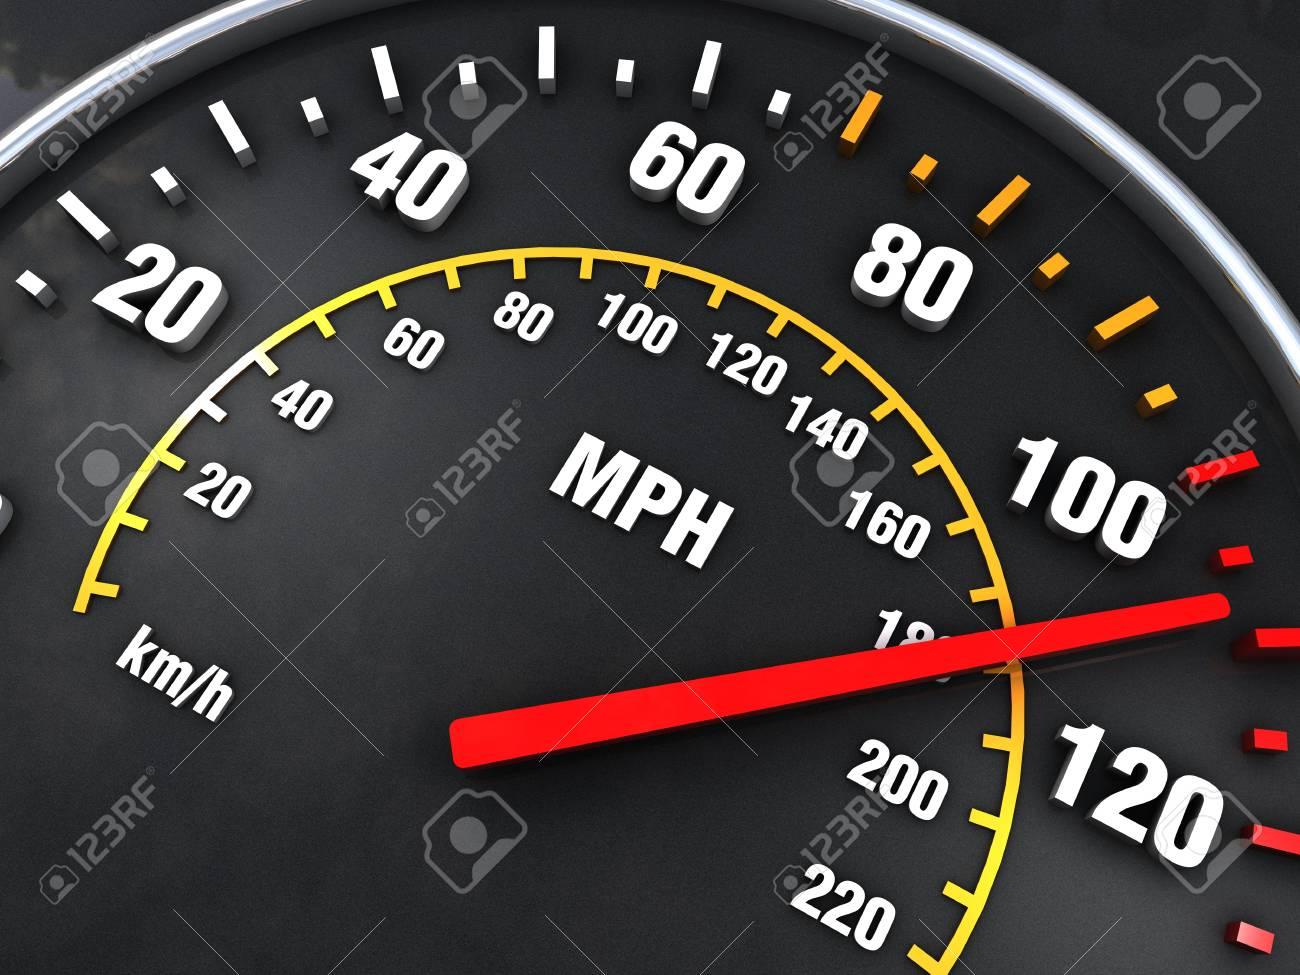 Speedometer close up with vibrant colors Stock Photo - 17433081